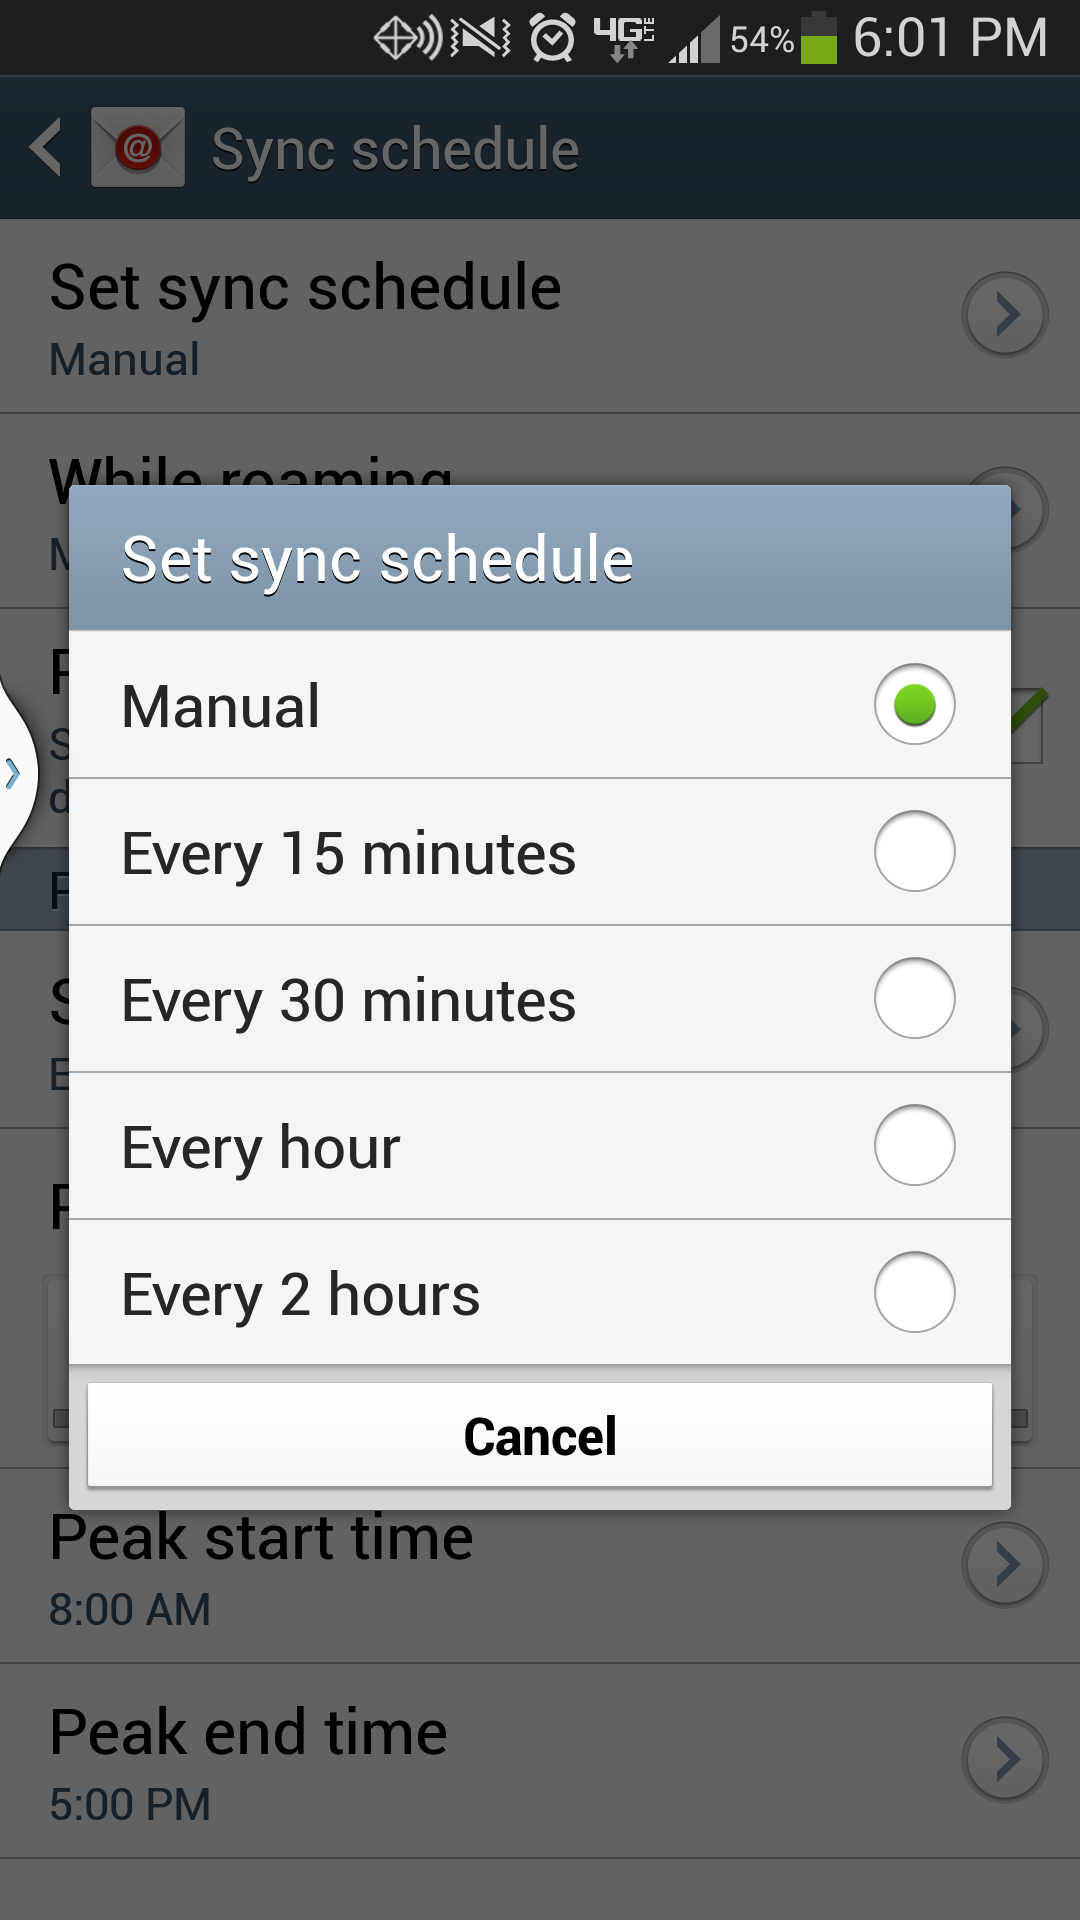 Galaxy S4 Set Sync Schedule to Manual